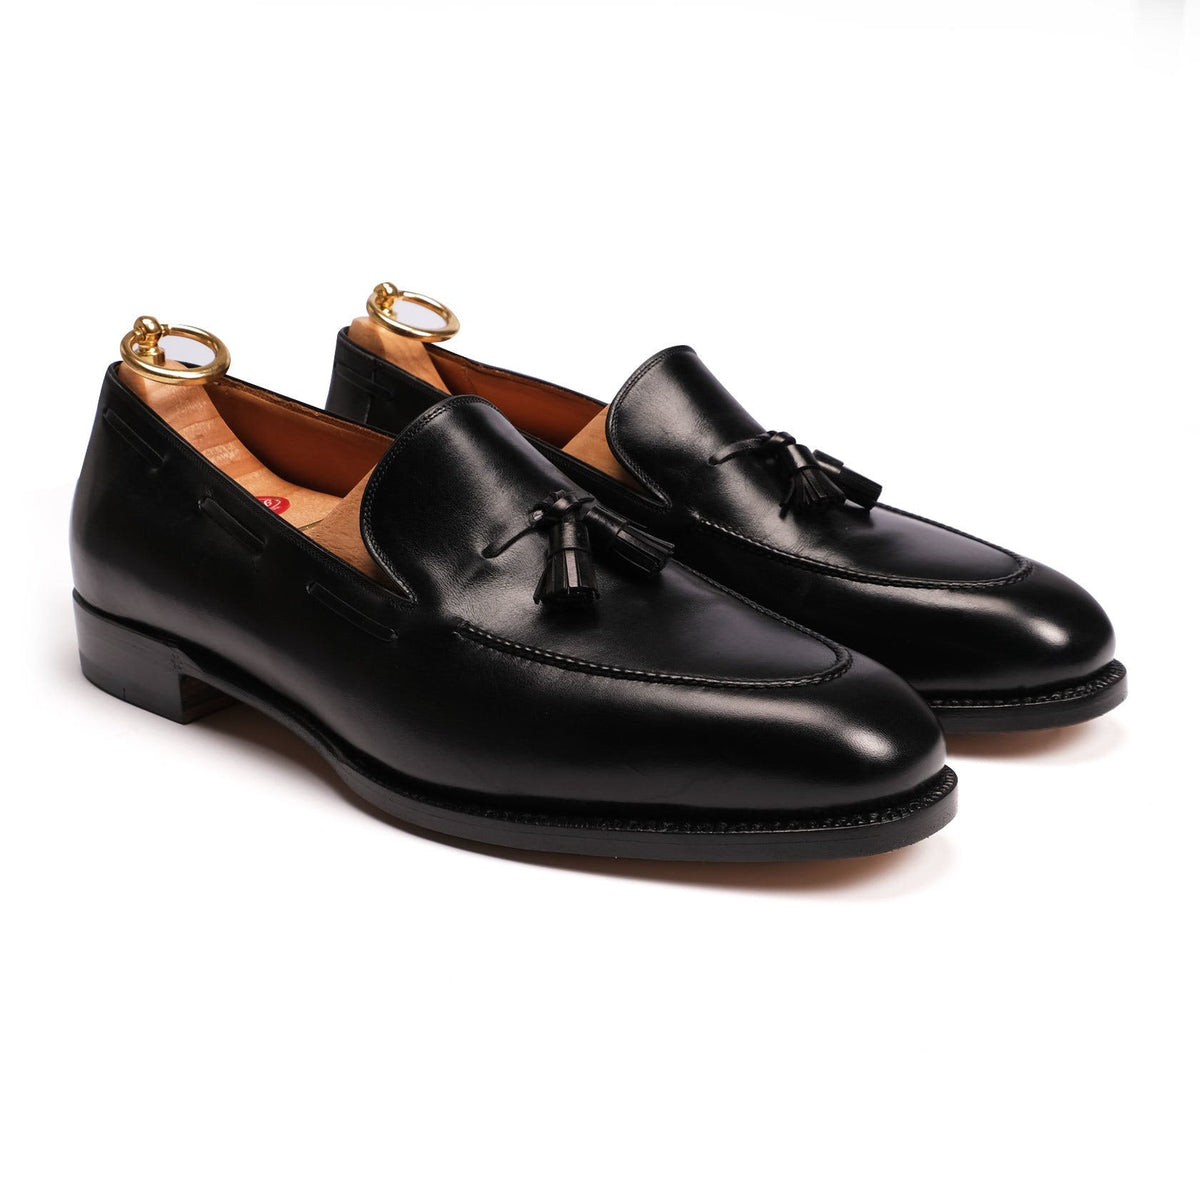 Rivolta 1883 Heritage 105 Loafer with tassels